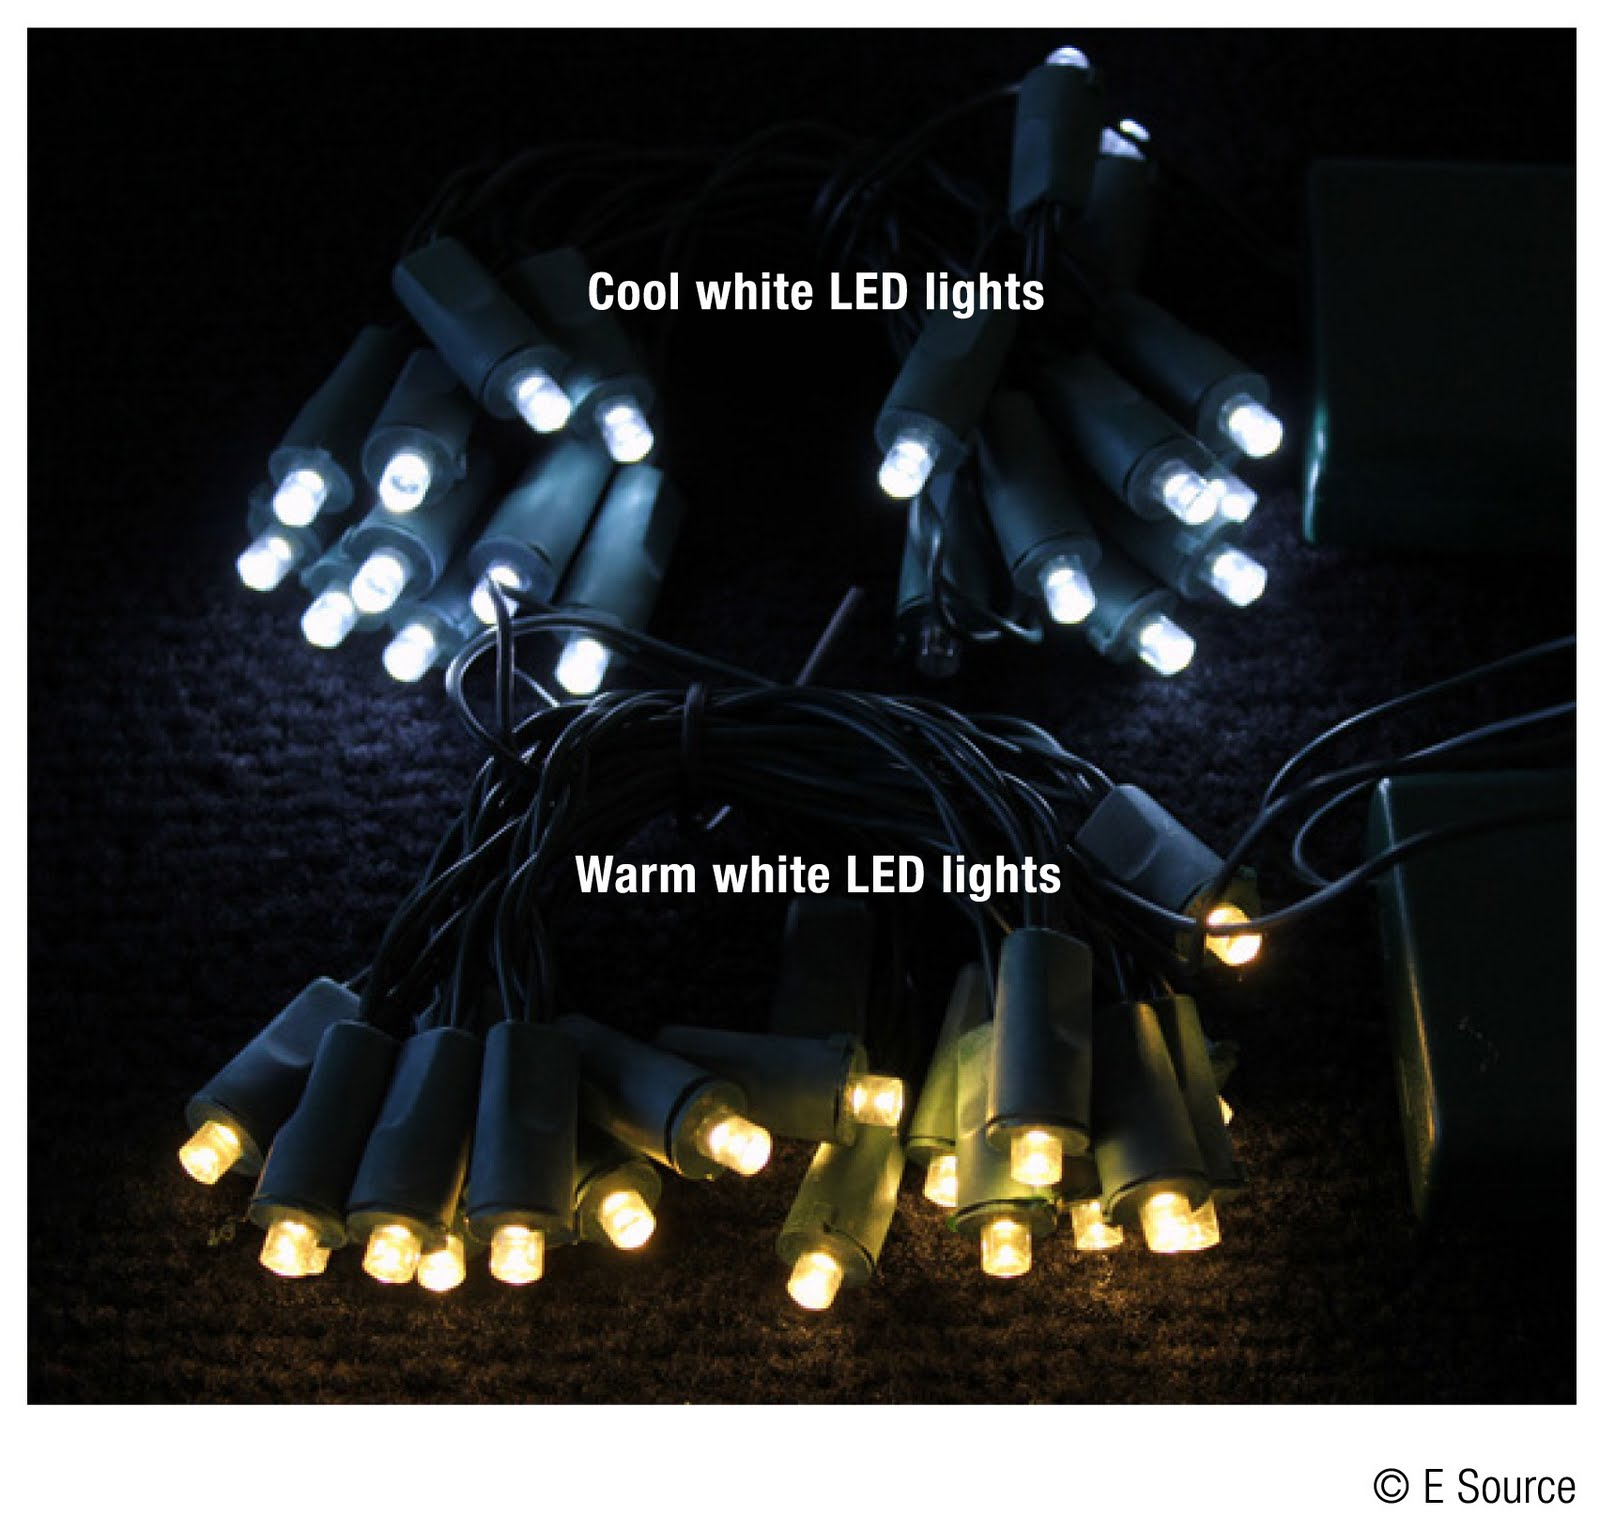 Cool white vs warm white led lights - Cool White Leds Are Brighter And Have A Slight Blue Tint Warm White Leds Are The Closest In Color To White Incandescent Holiday Lights